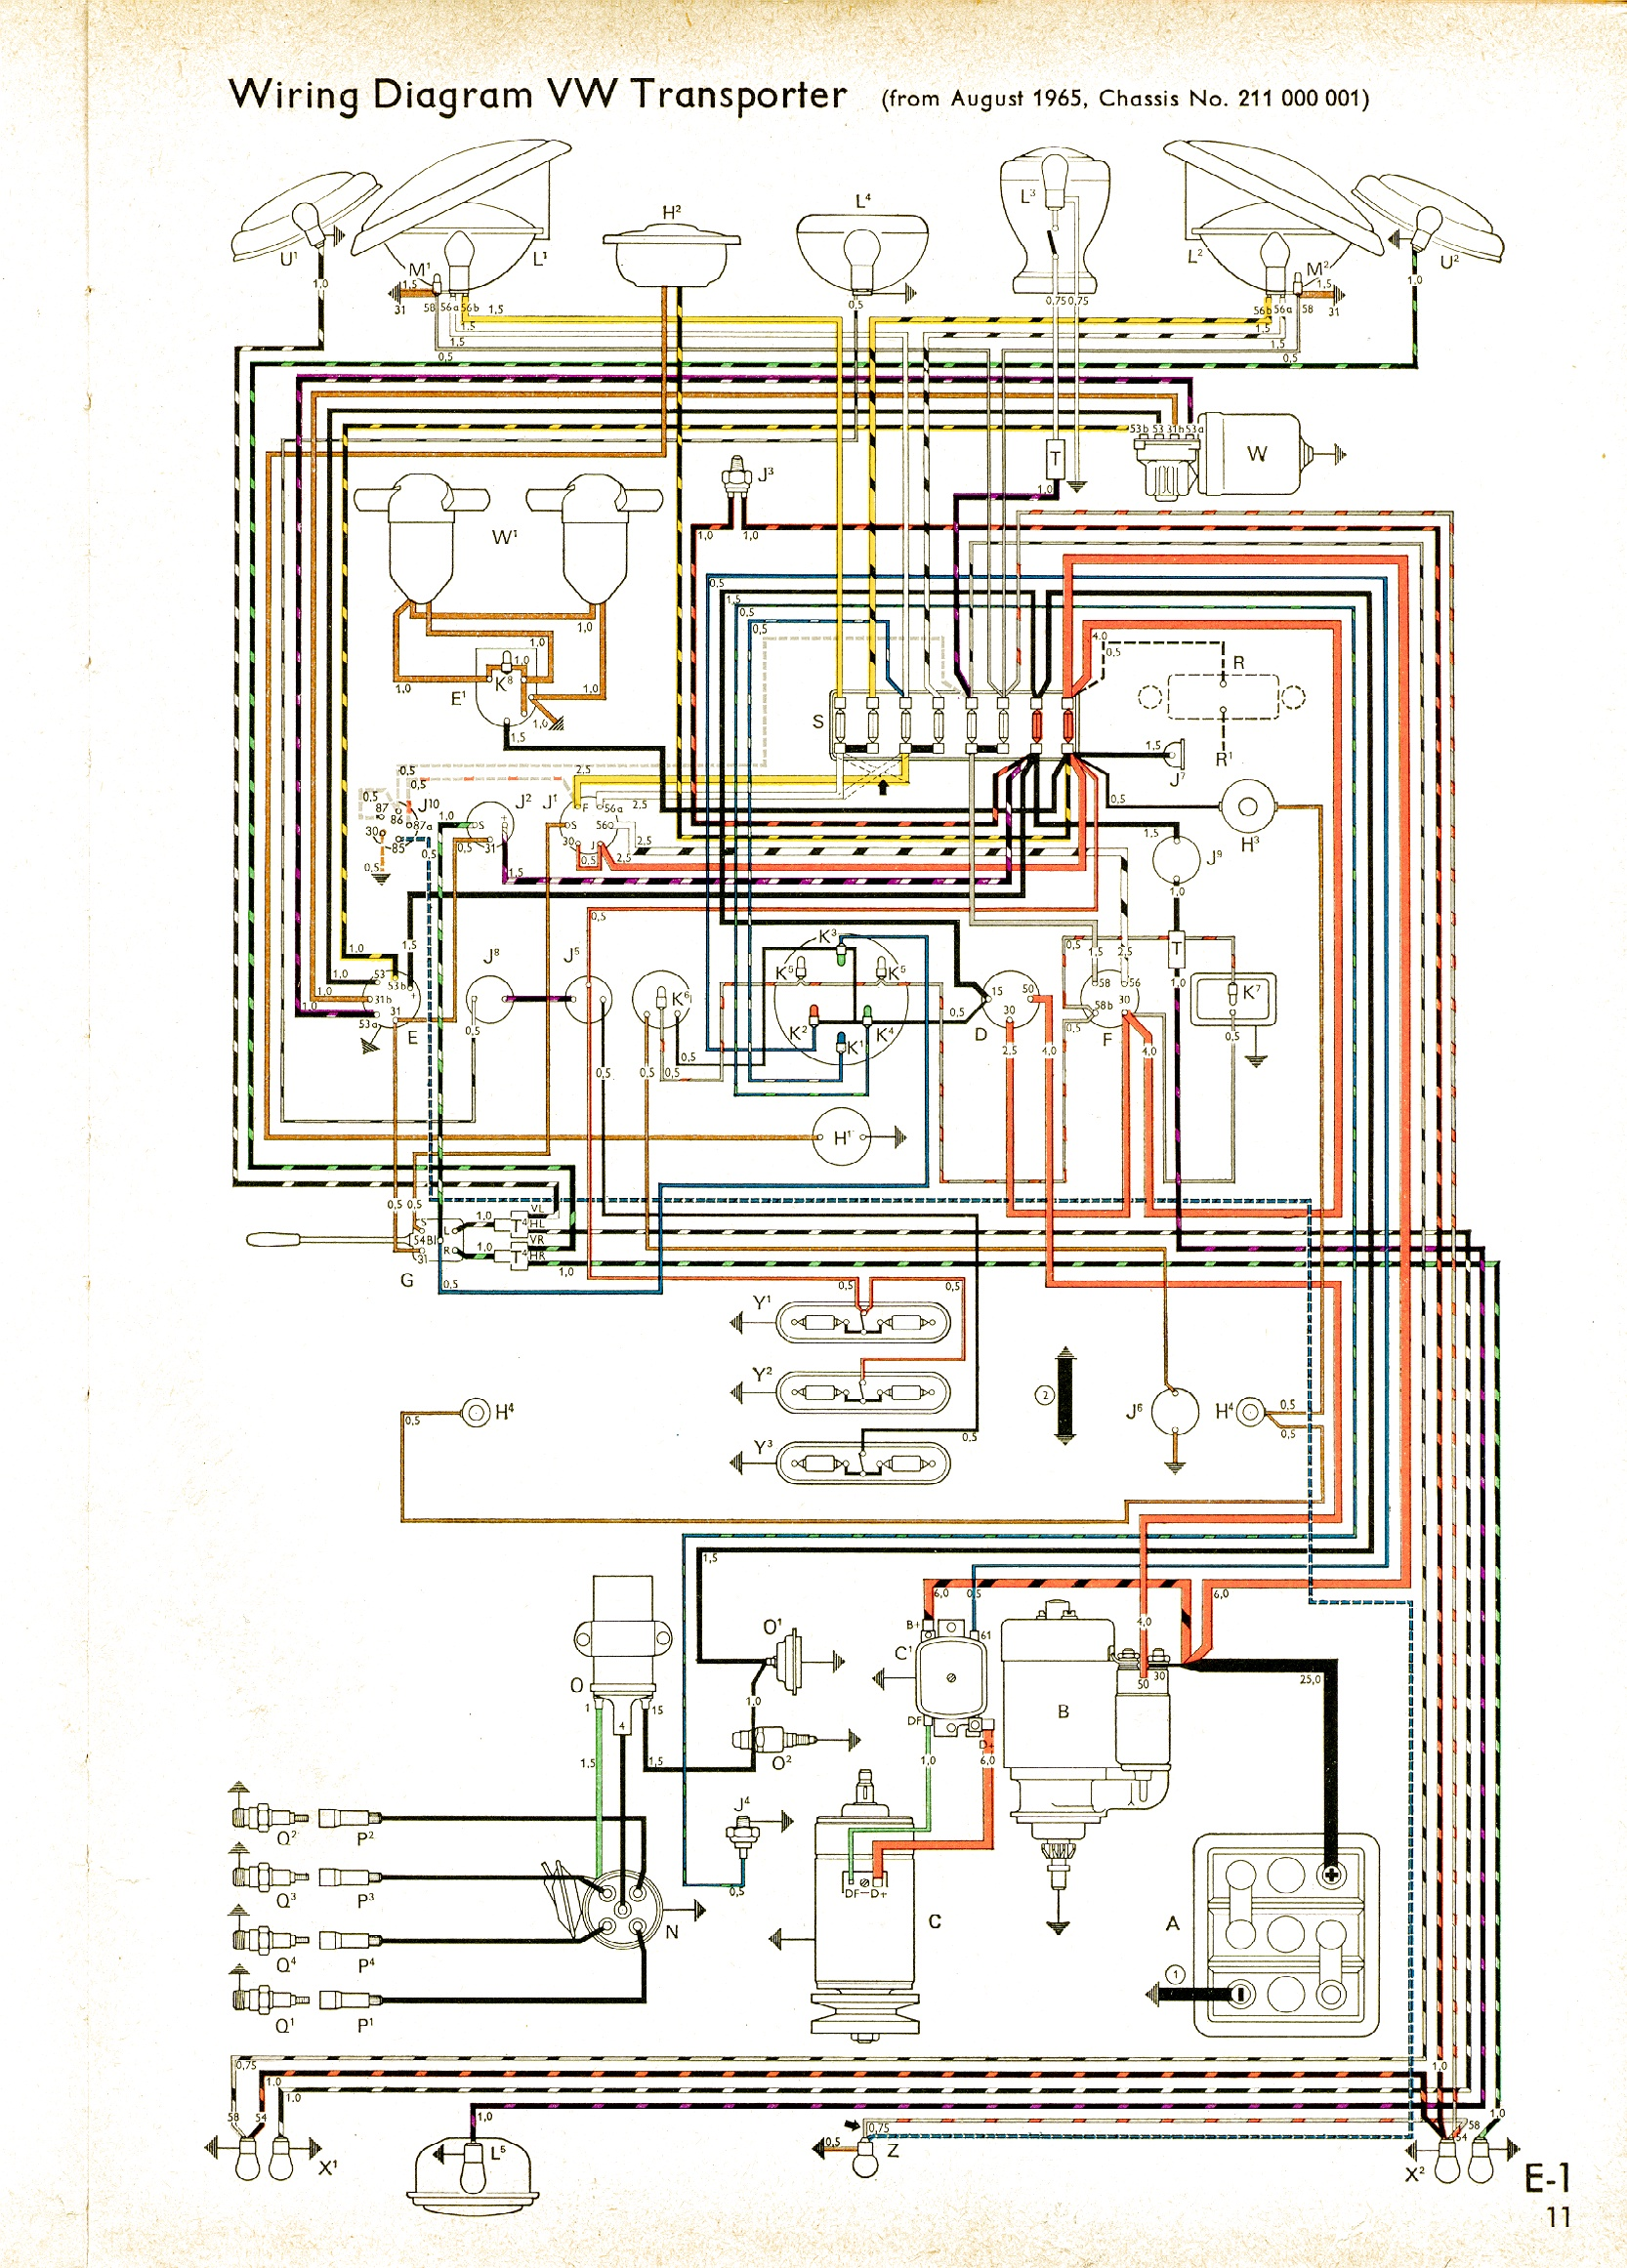 1970 beetle wiring diagram serpentine belt routing vw eos data 1976 fuse block cooling system